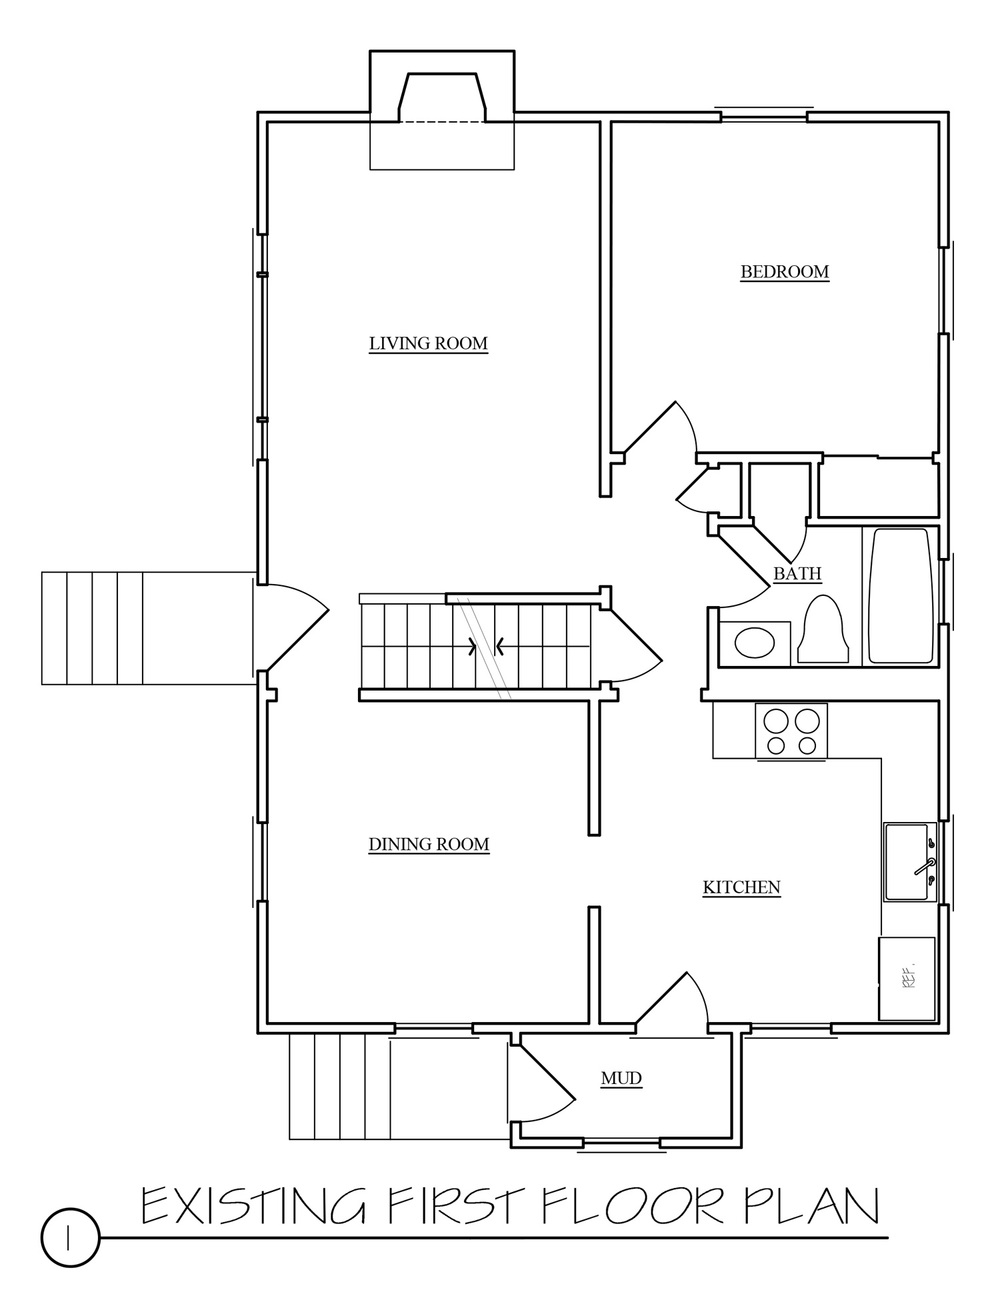 Existing-First-Floor-Plan.jpg